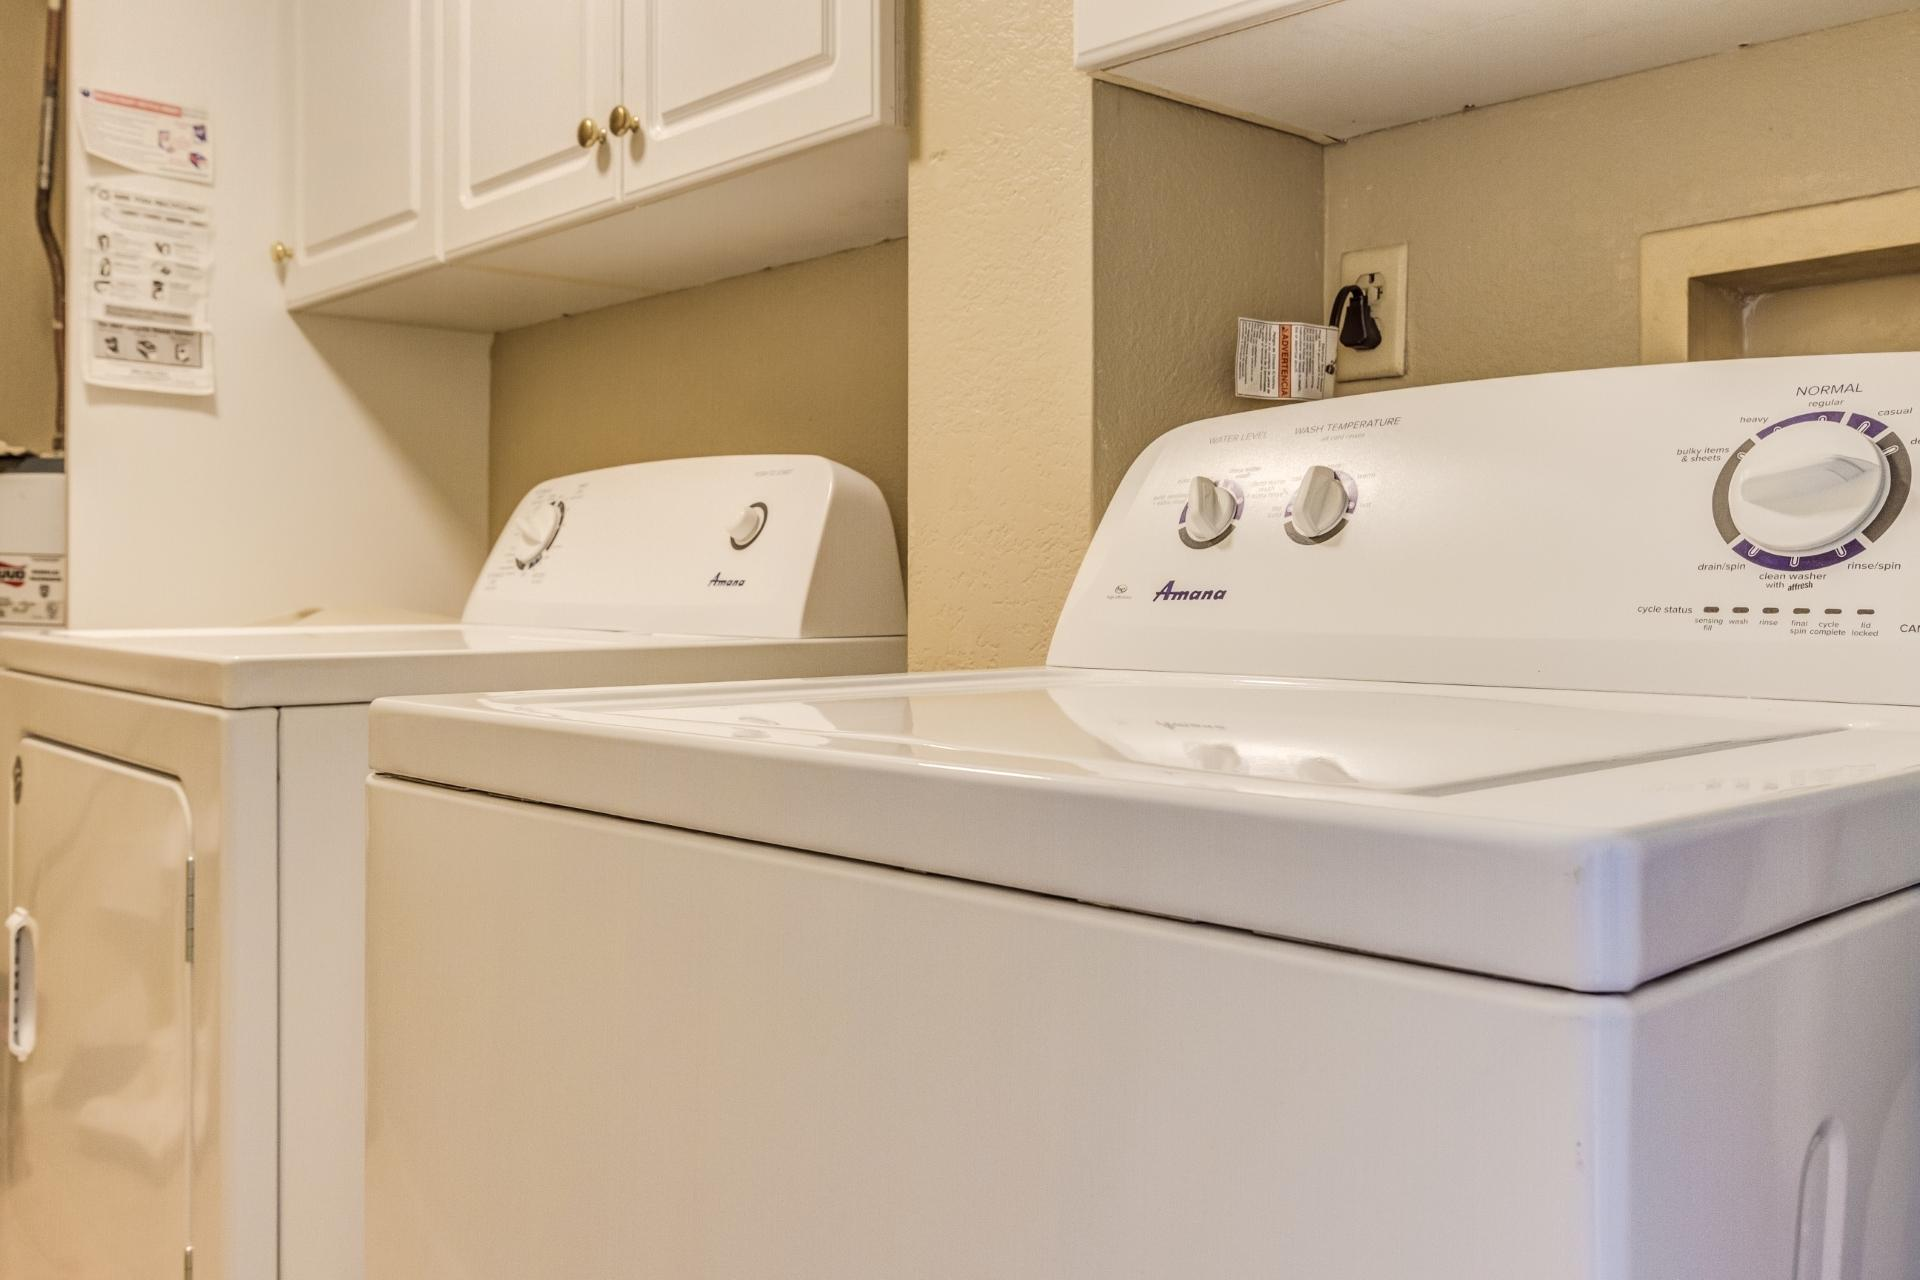 Brand new washer & dryer for your use.